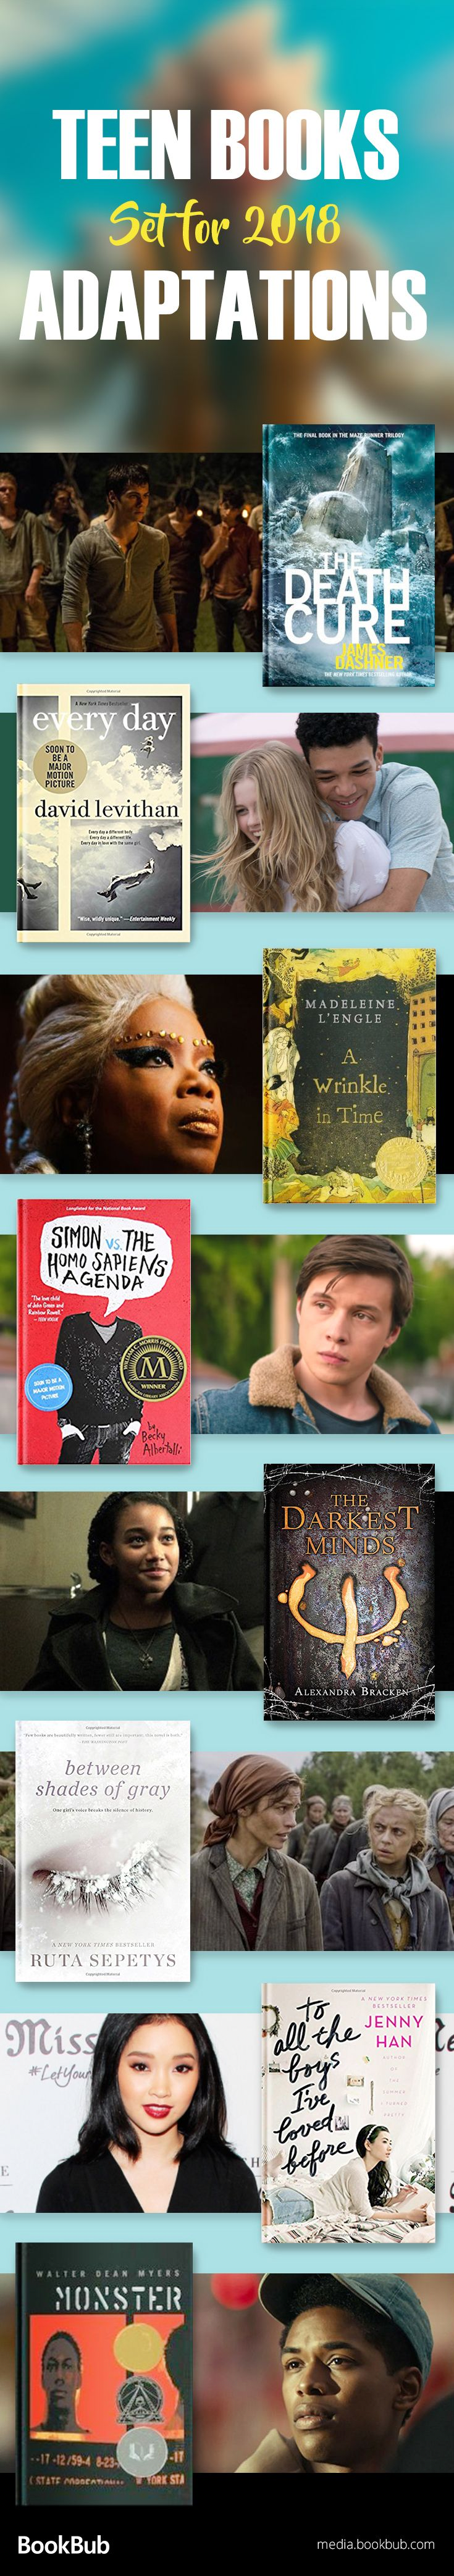 These teen books are worth reading before they become movies! Including some of the best young adult books spanning dystopian, mystery, fantasy, romance, and more. This reading list has great suggestions for teen girls and teen boys.